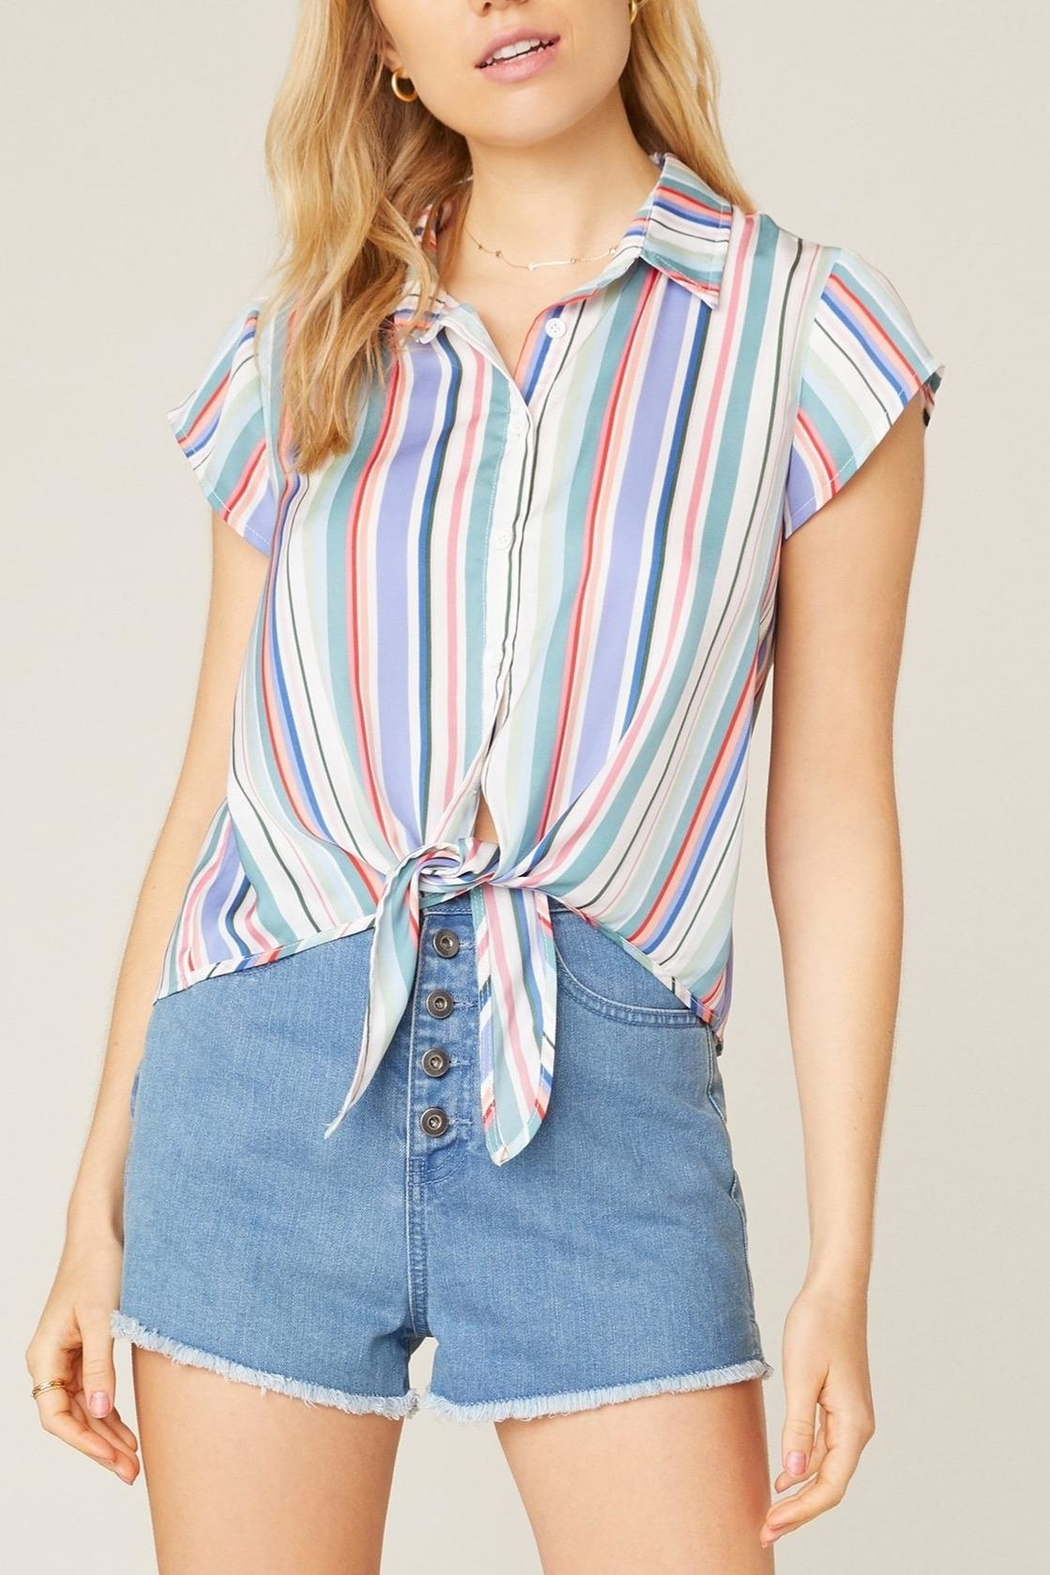 Jack by BB Dakota Shirt-Feelings Striped Blouse - Main Image